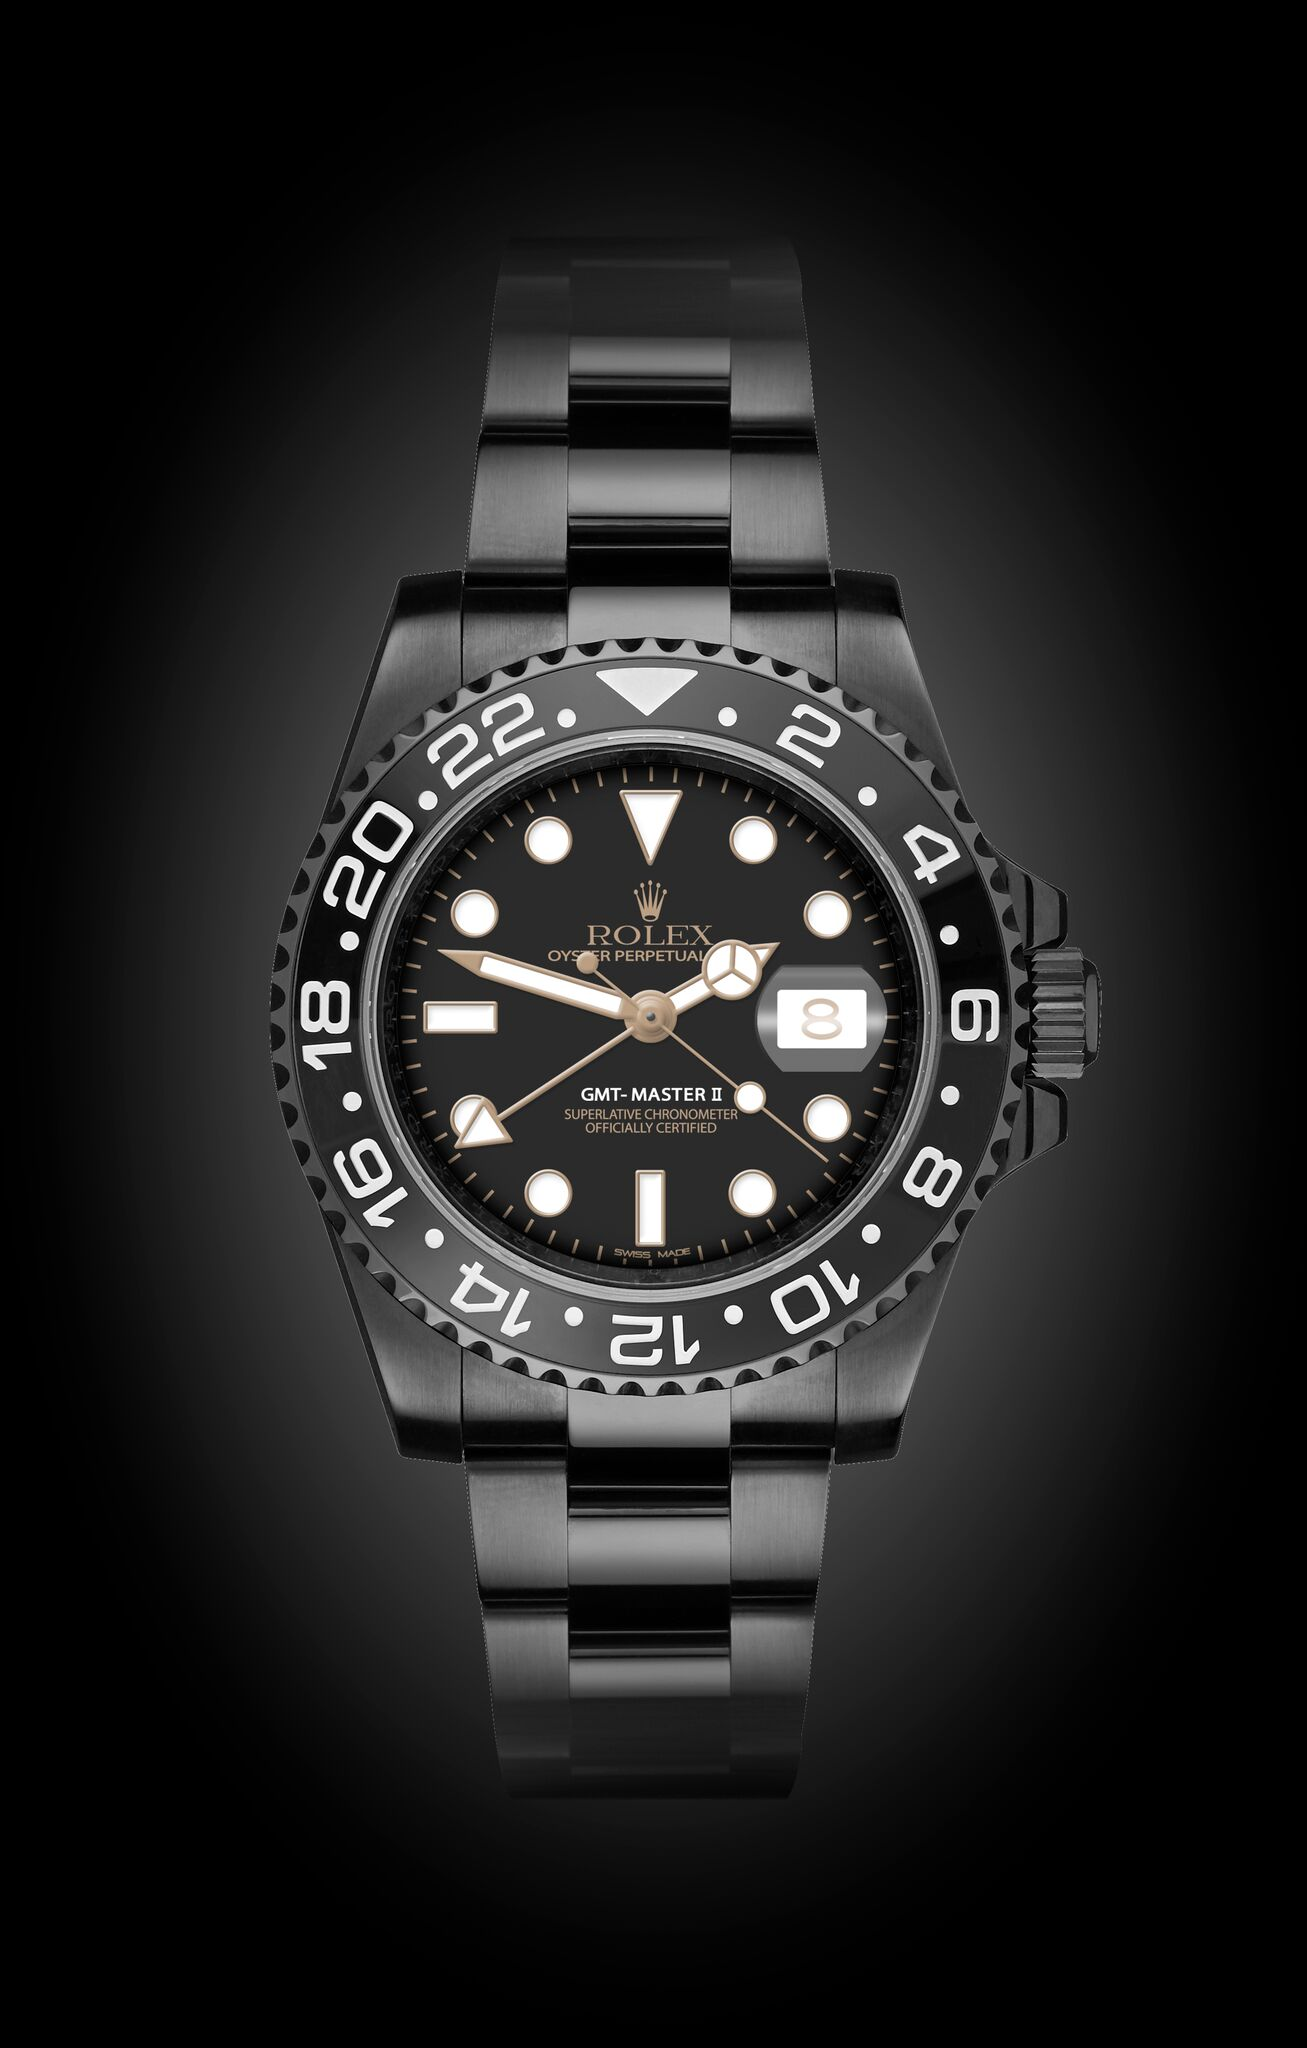 Rolex Gmt Master Ii Eclipse Titan Black